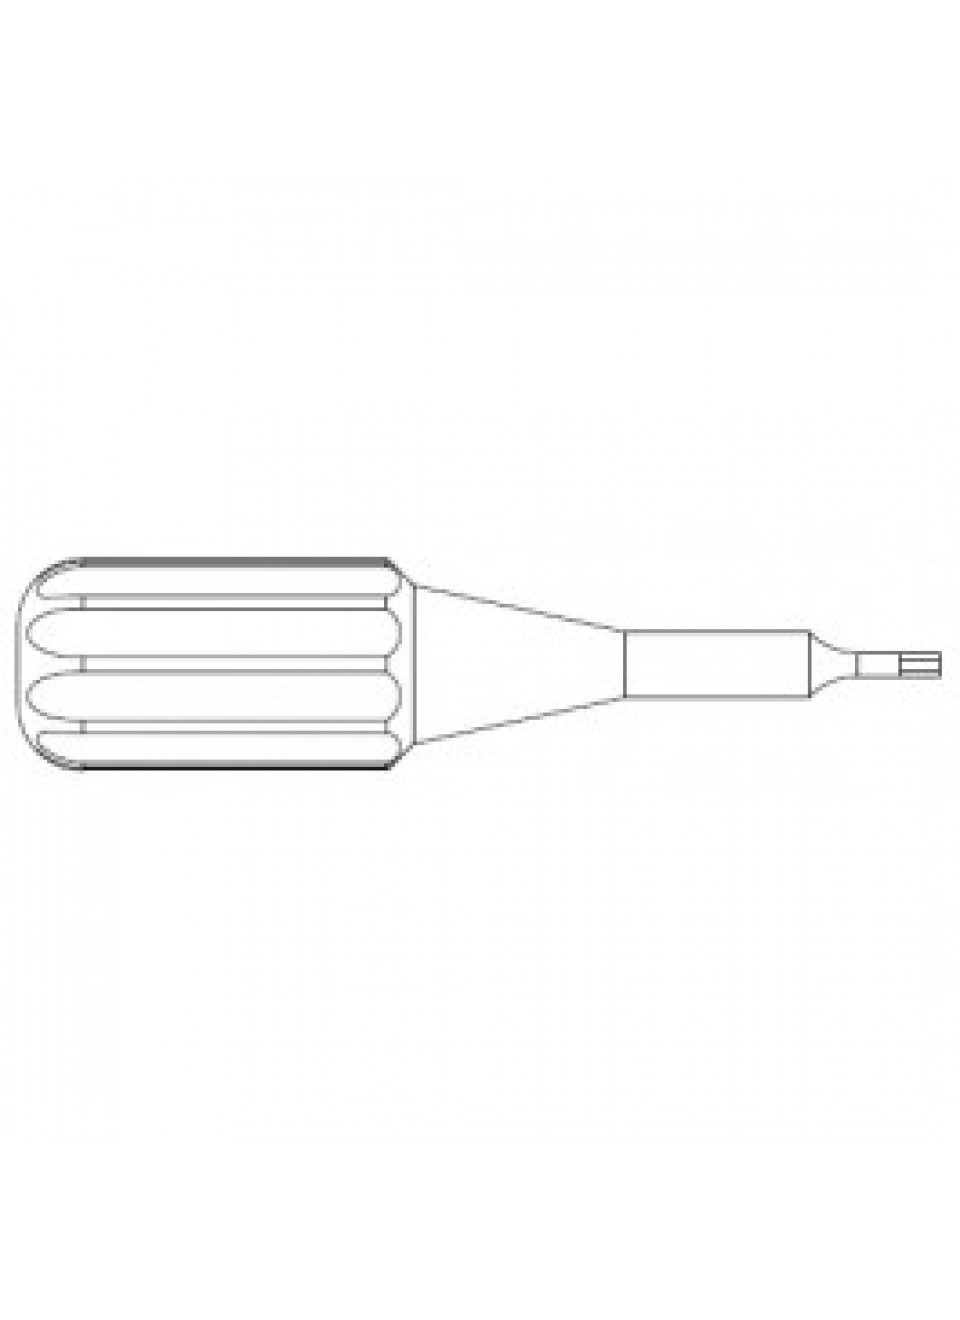 Master-Pin-Control screwdriver for pins ref. MP11